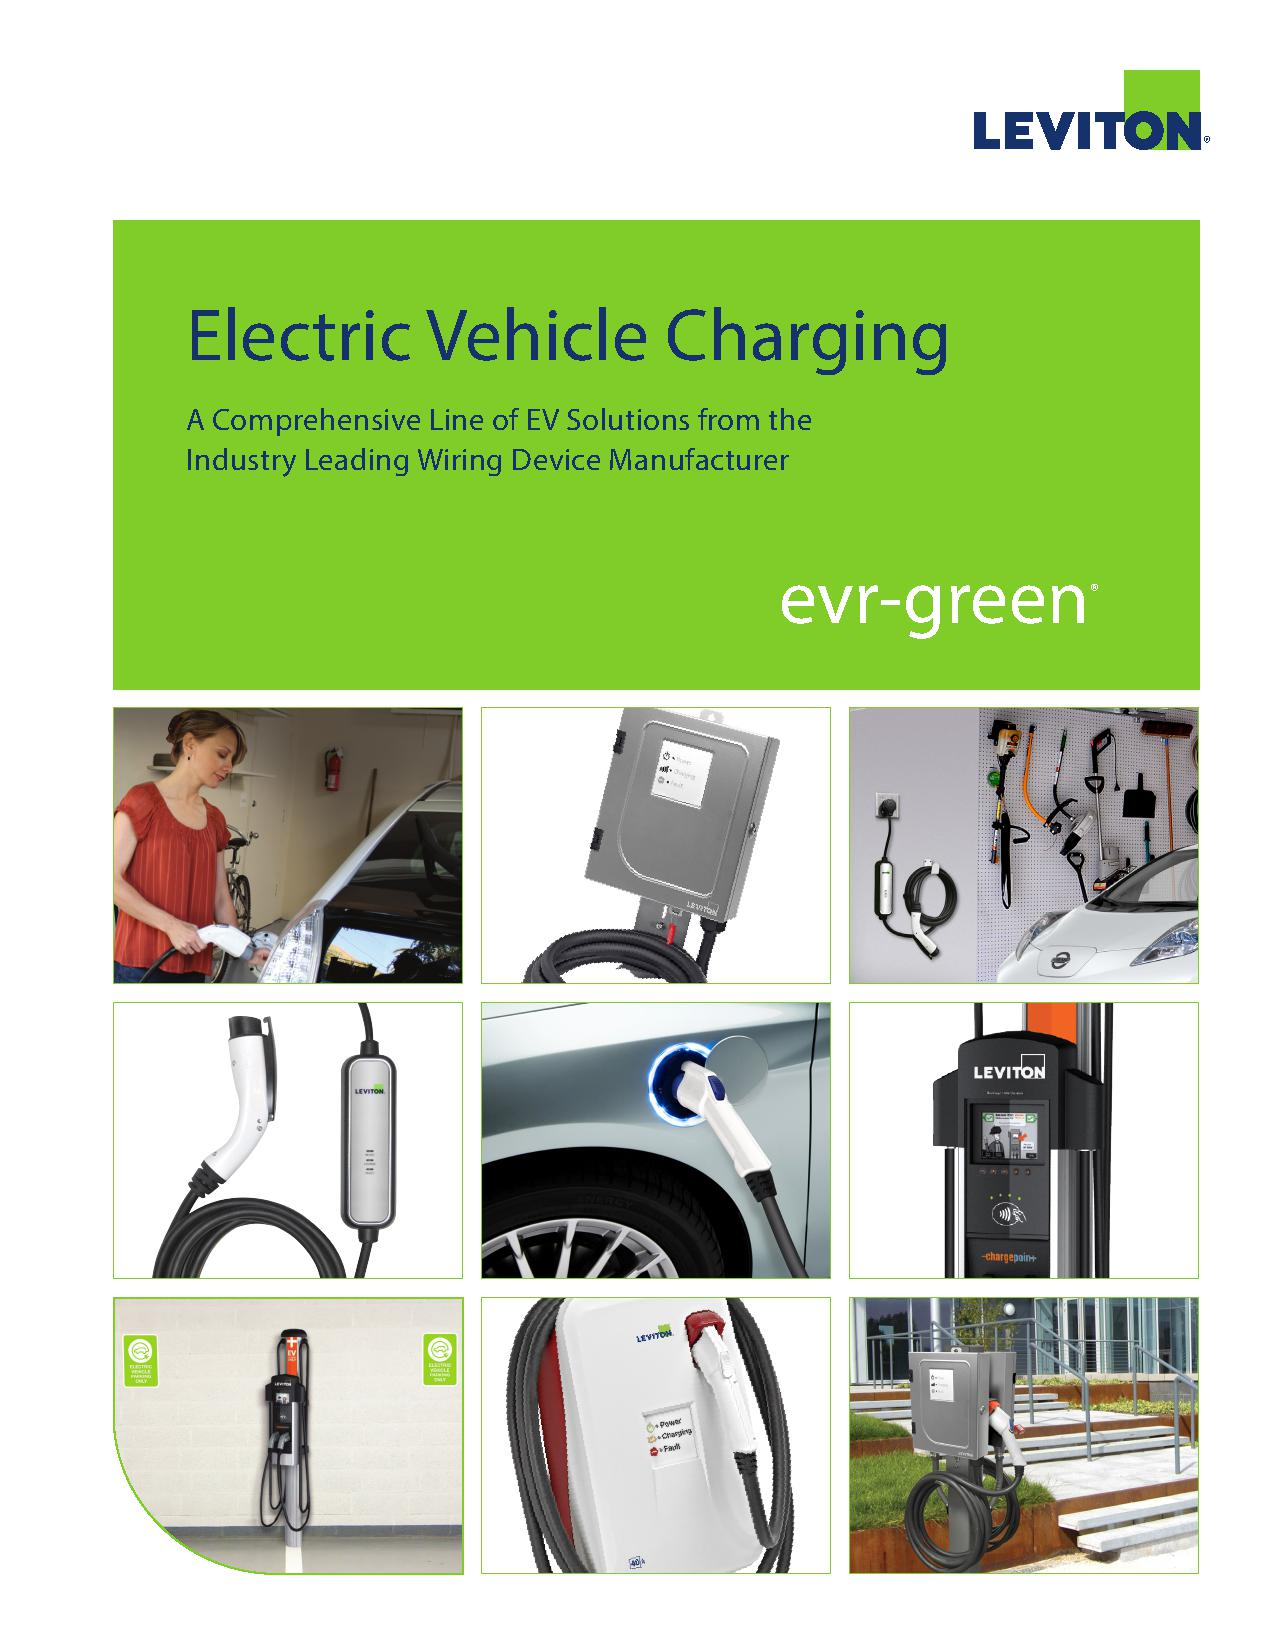 Leviton Electric Vehicle Charging Equipment | AJB Sales